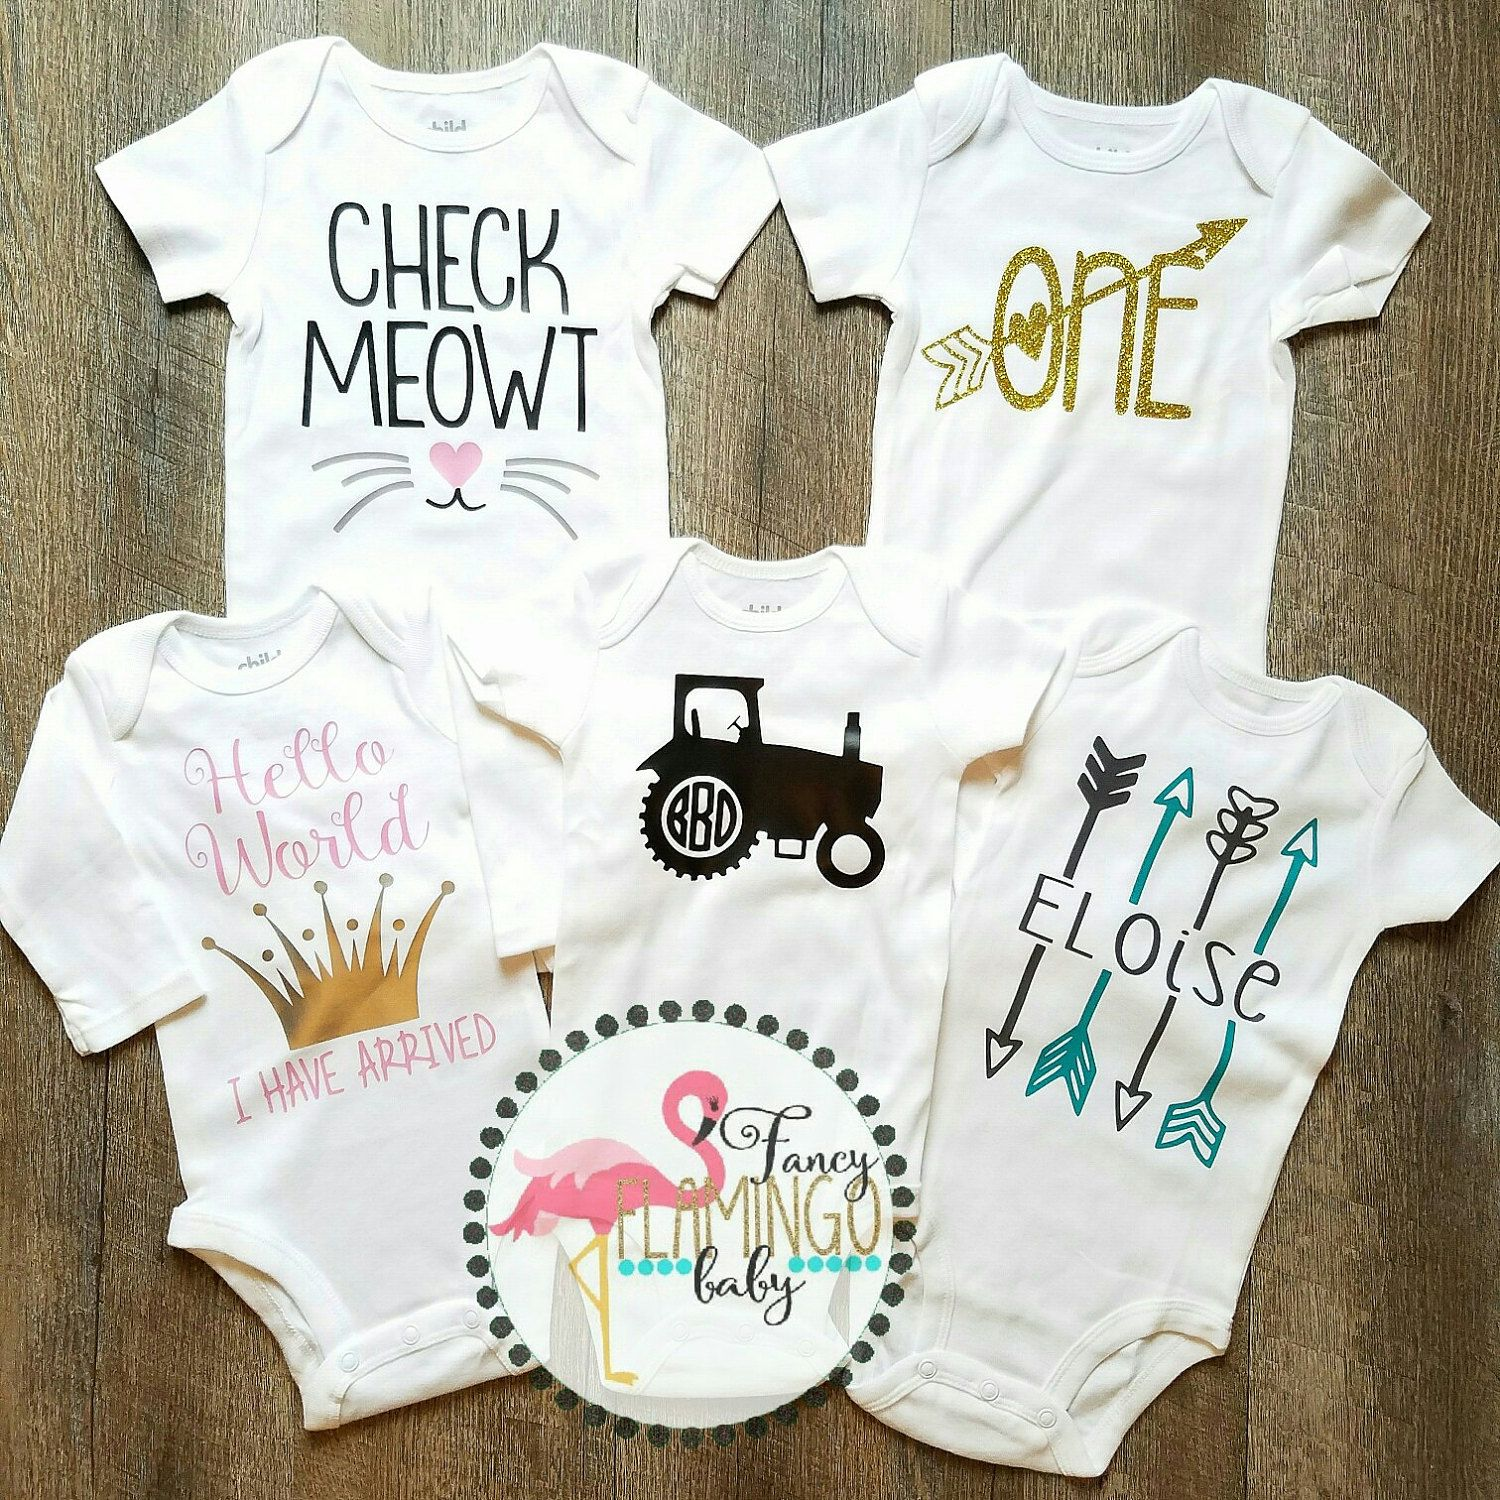 Custom onesies baby body suits! Check Meowt. Hello world I have arrived.  Tractor monogram 9f1f7c9faa41